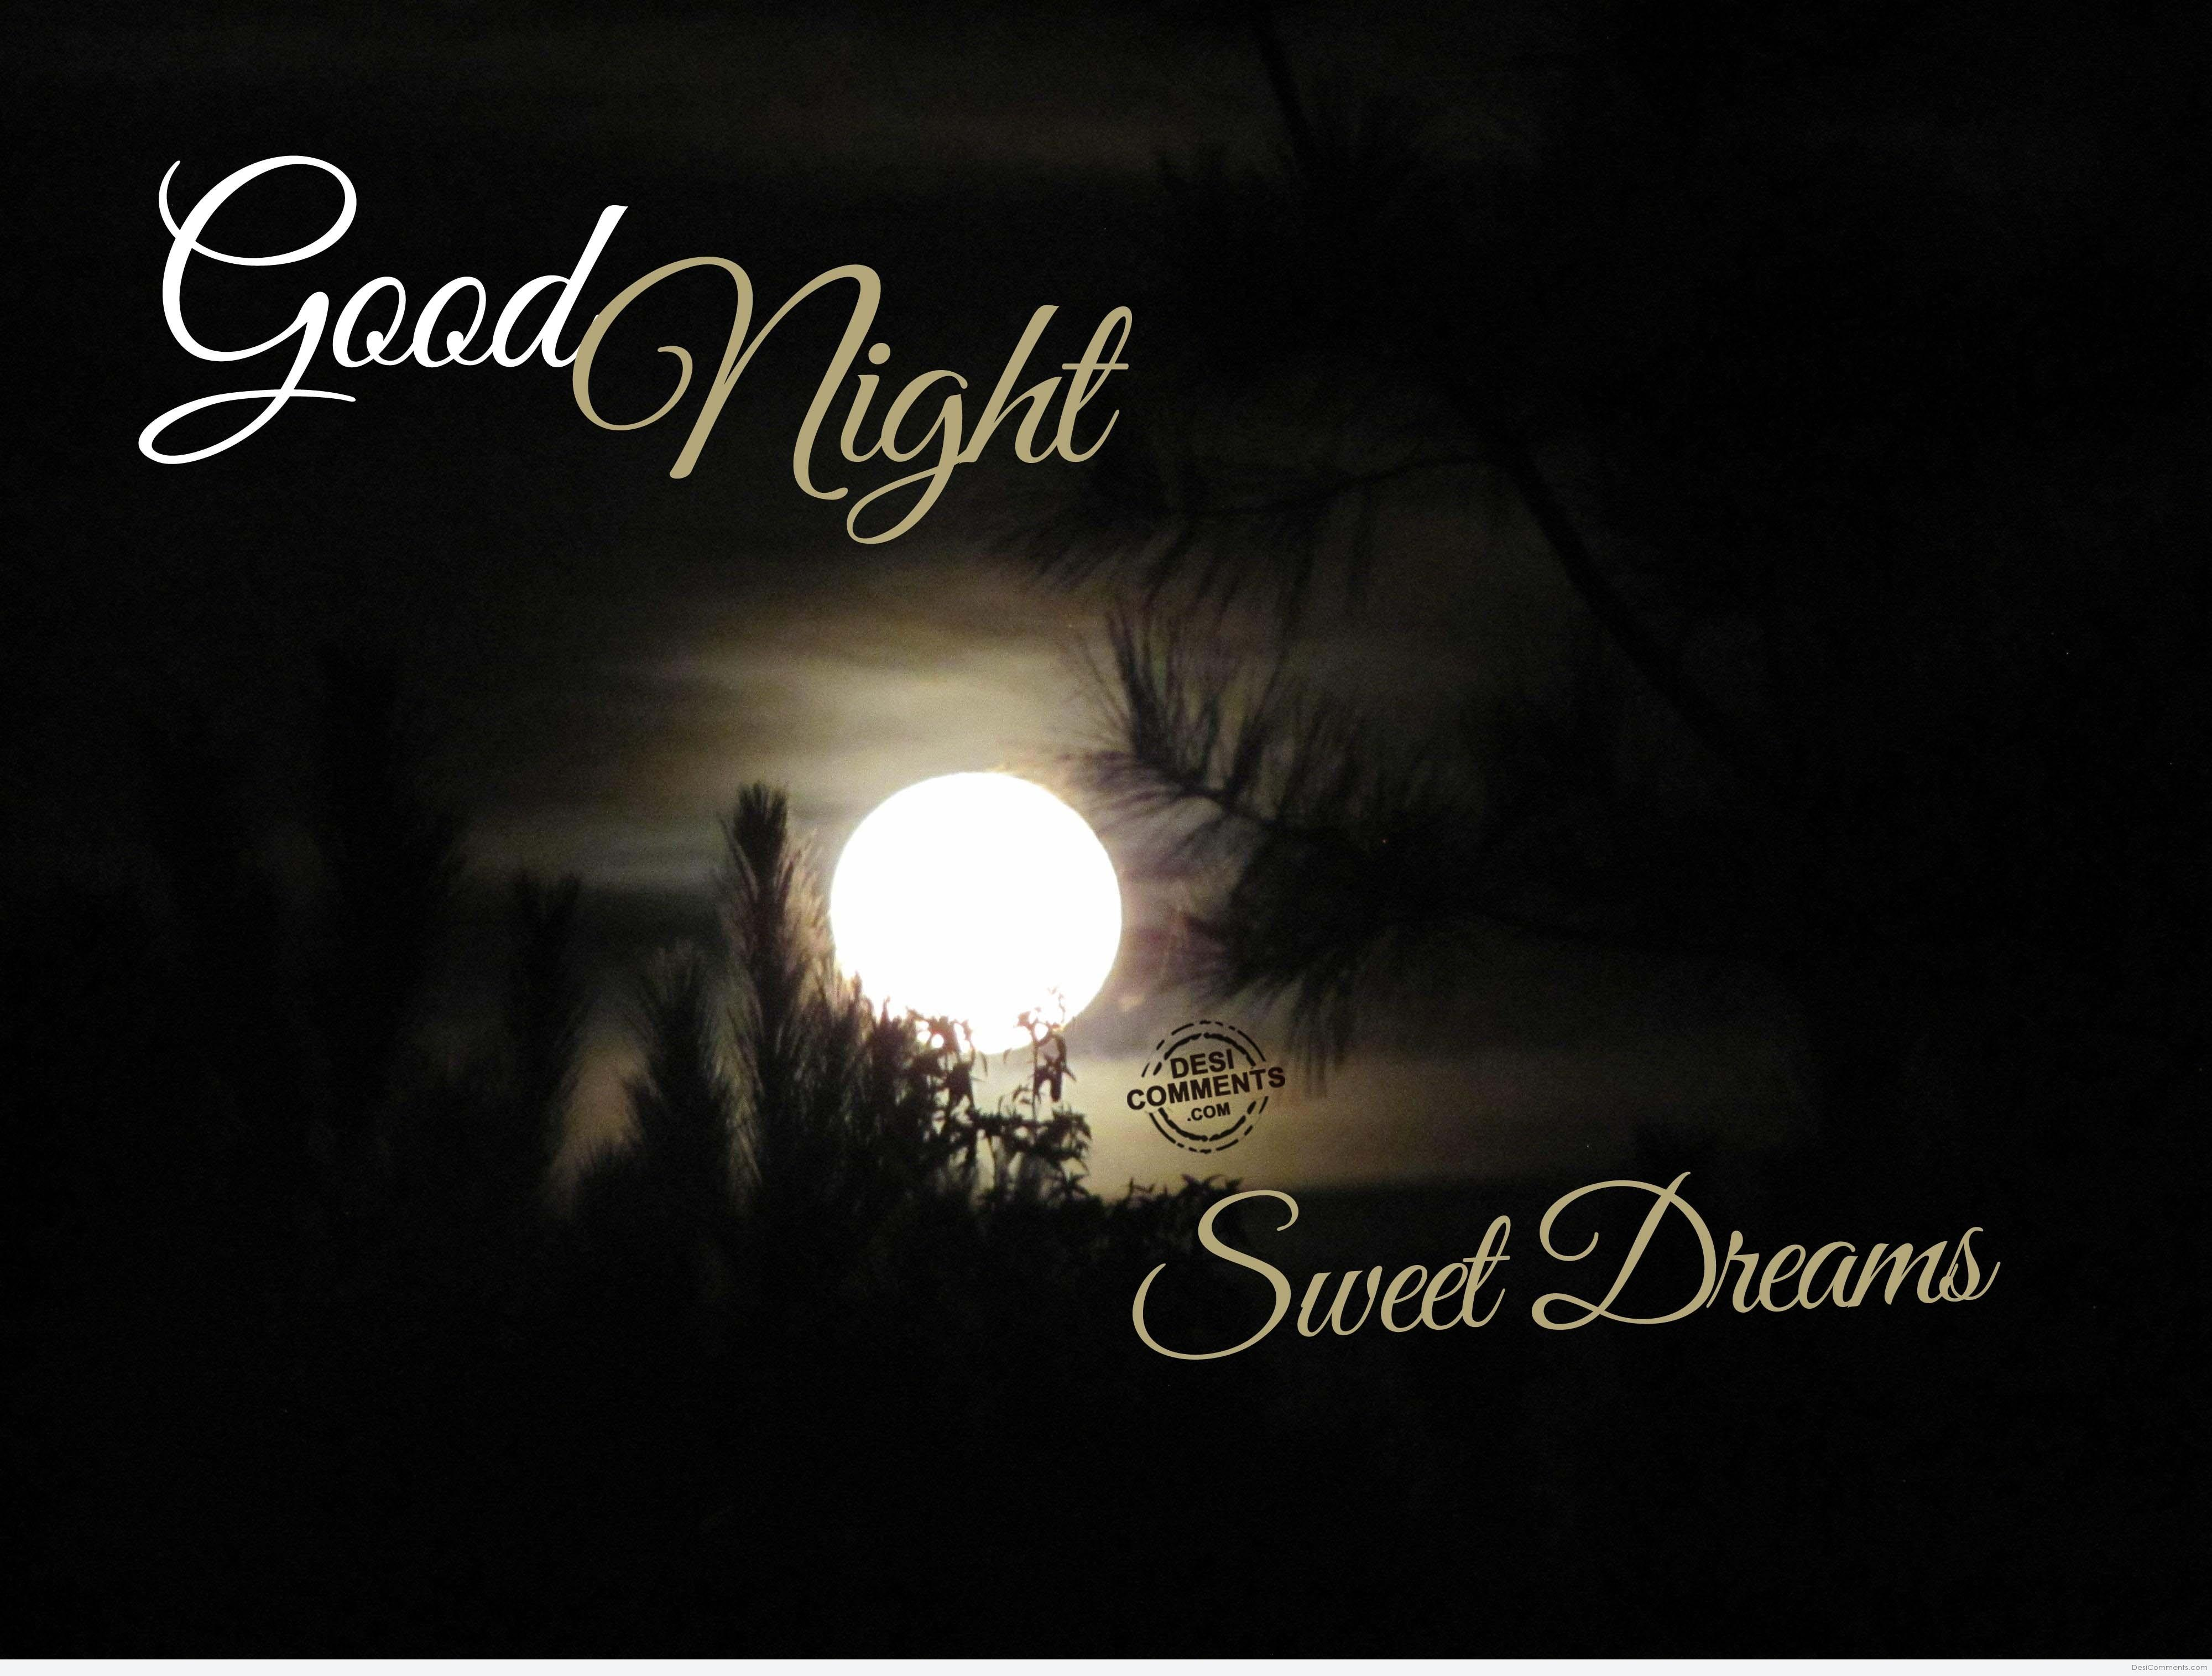 Good Night Pictures, Images, Graphics for Facebook ...: http://www.desicomments.com/desi/goodnight/